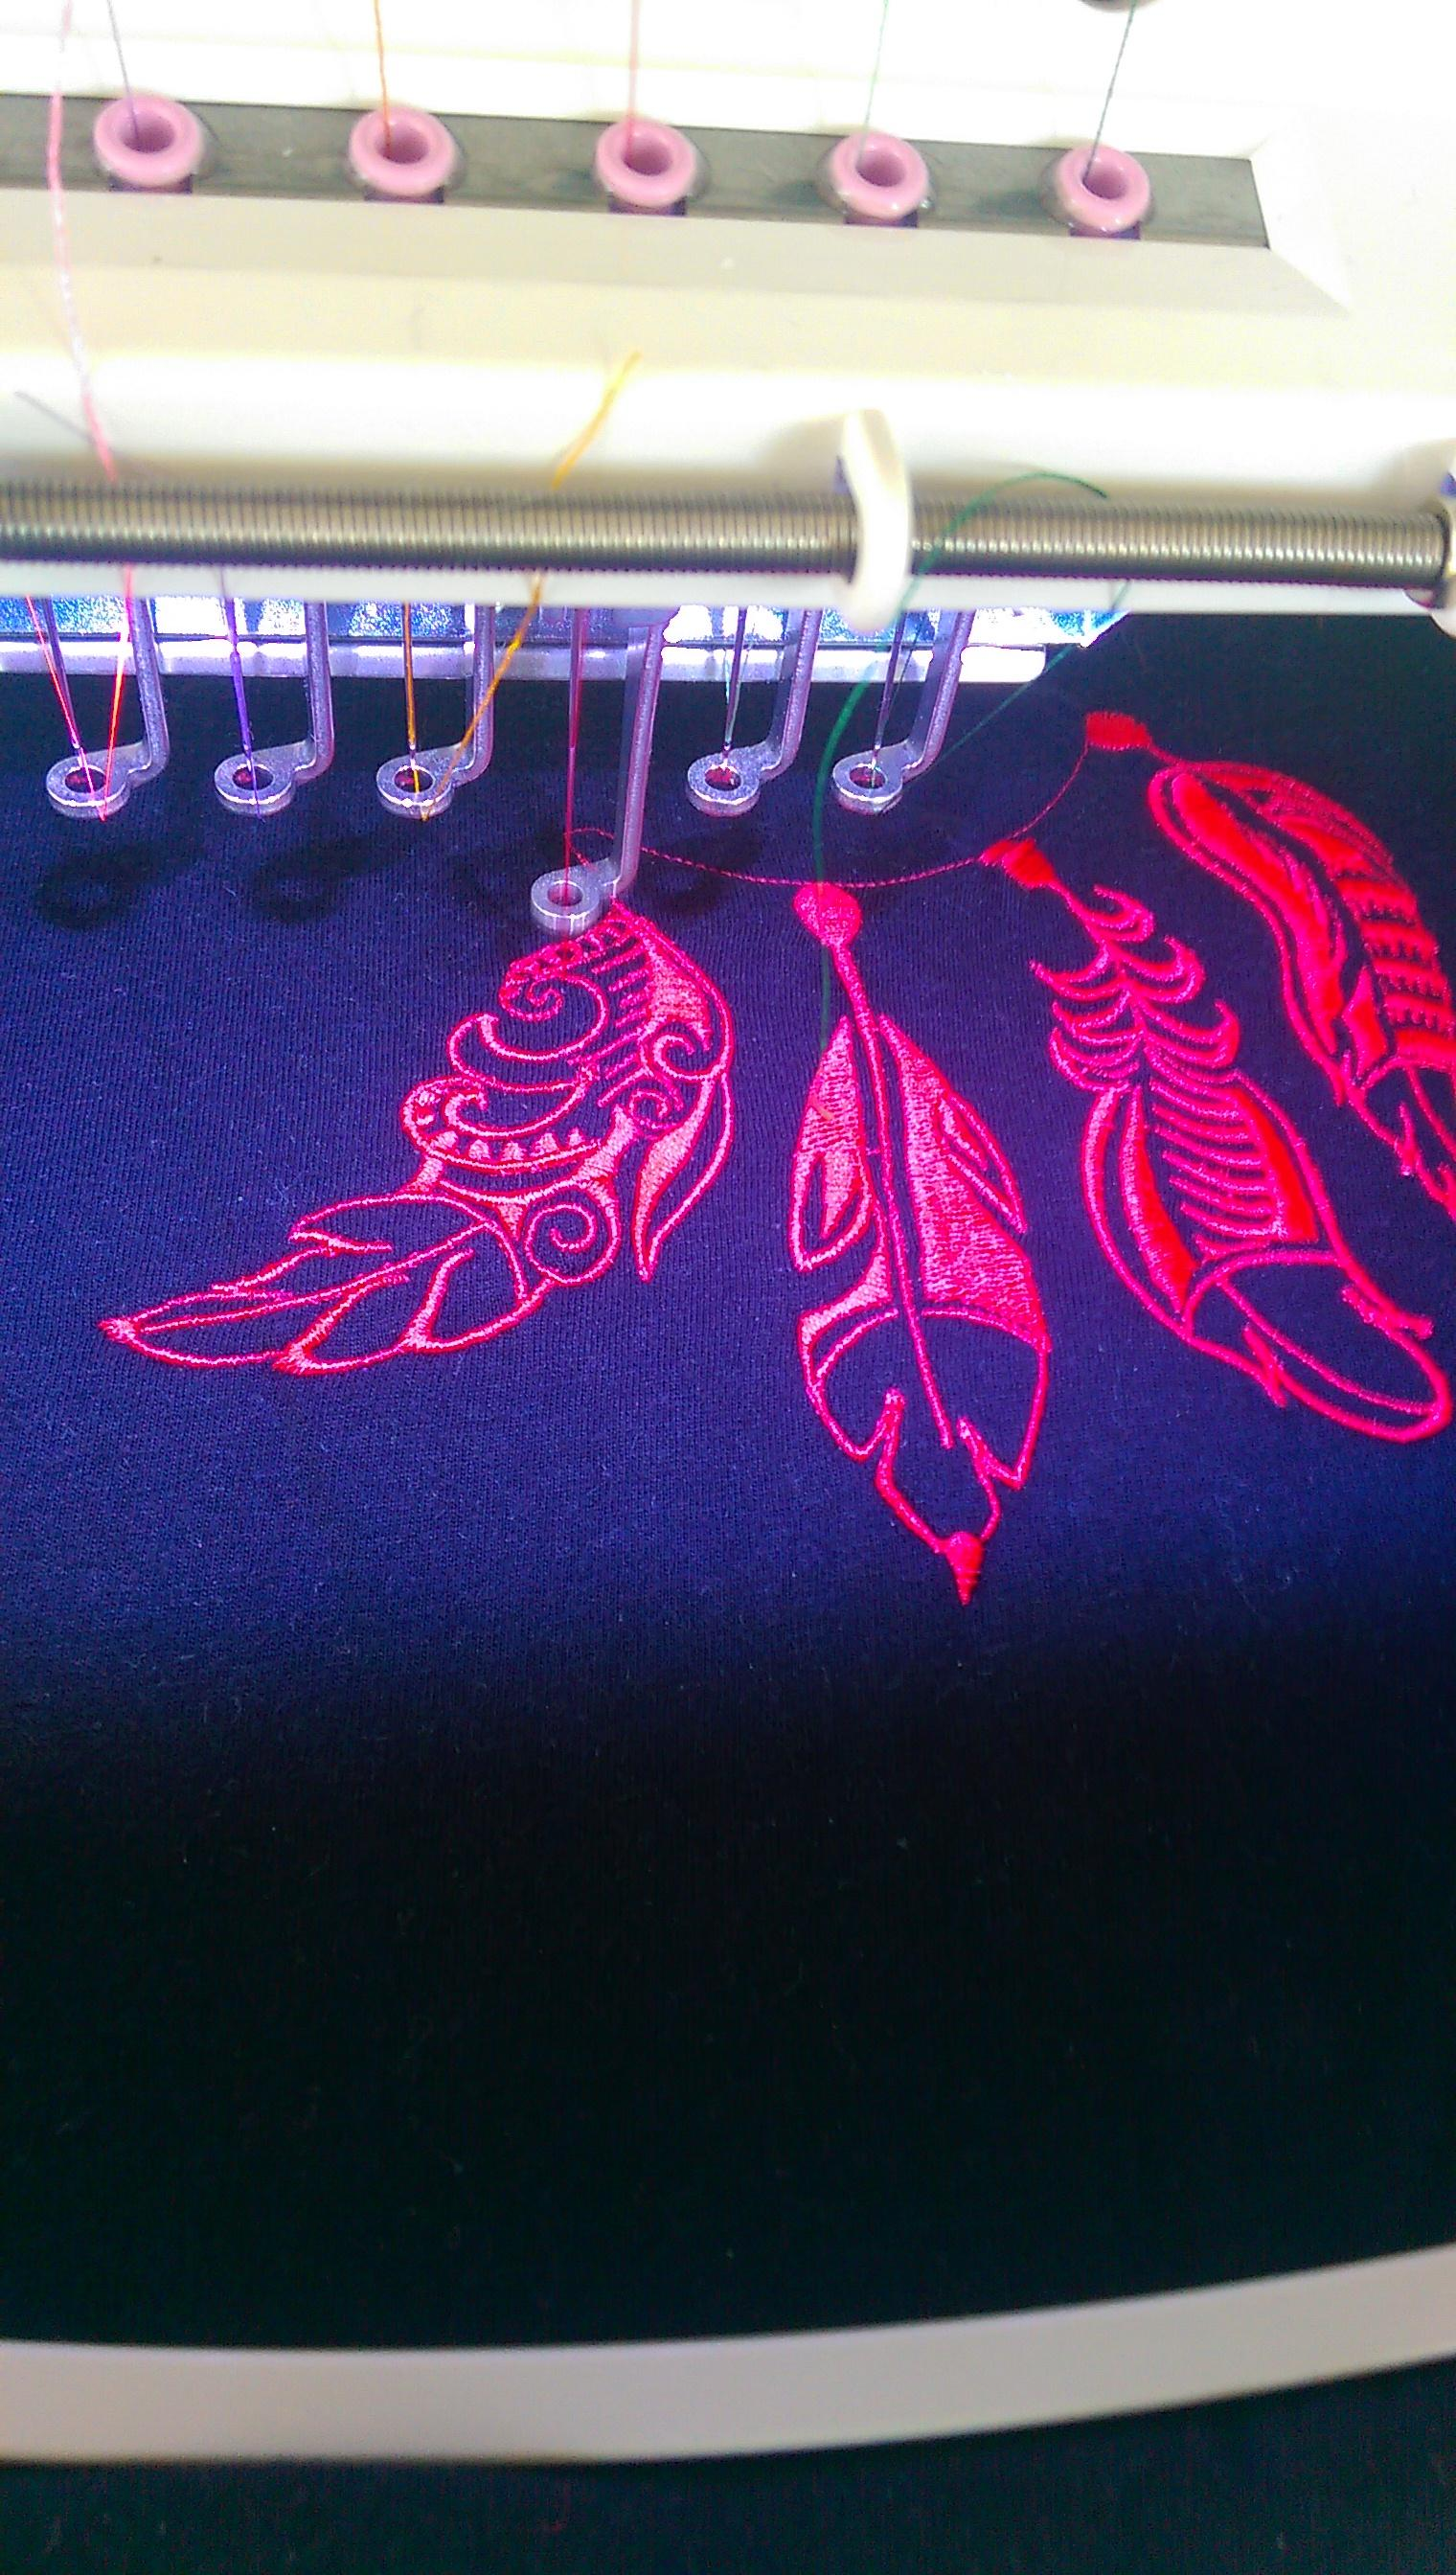 Dreamcatcher embroidery design in progress